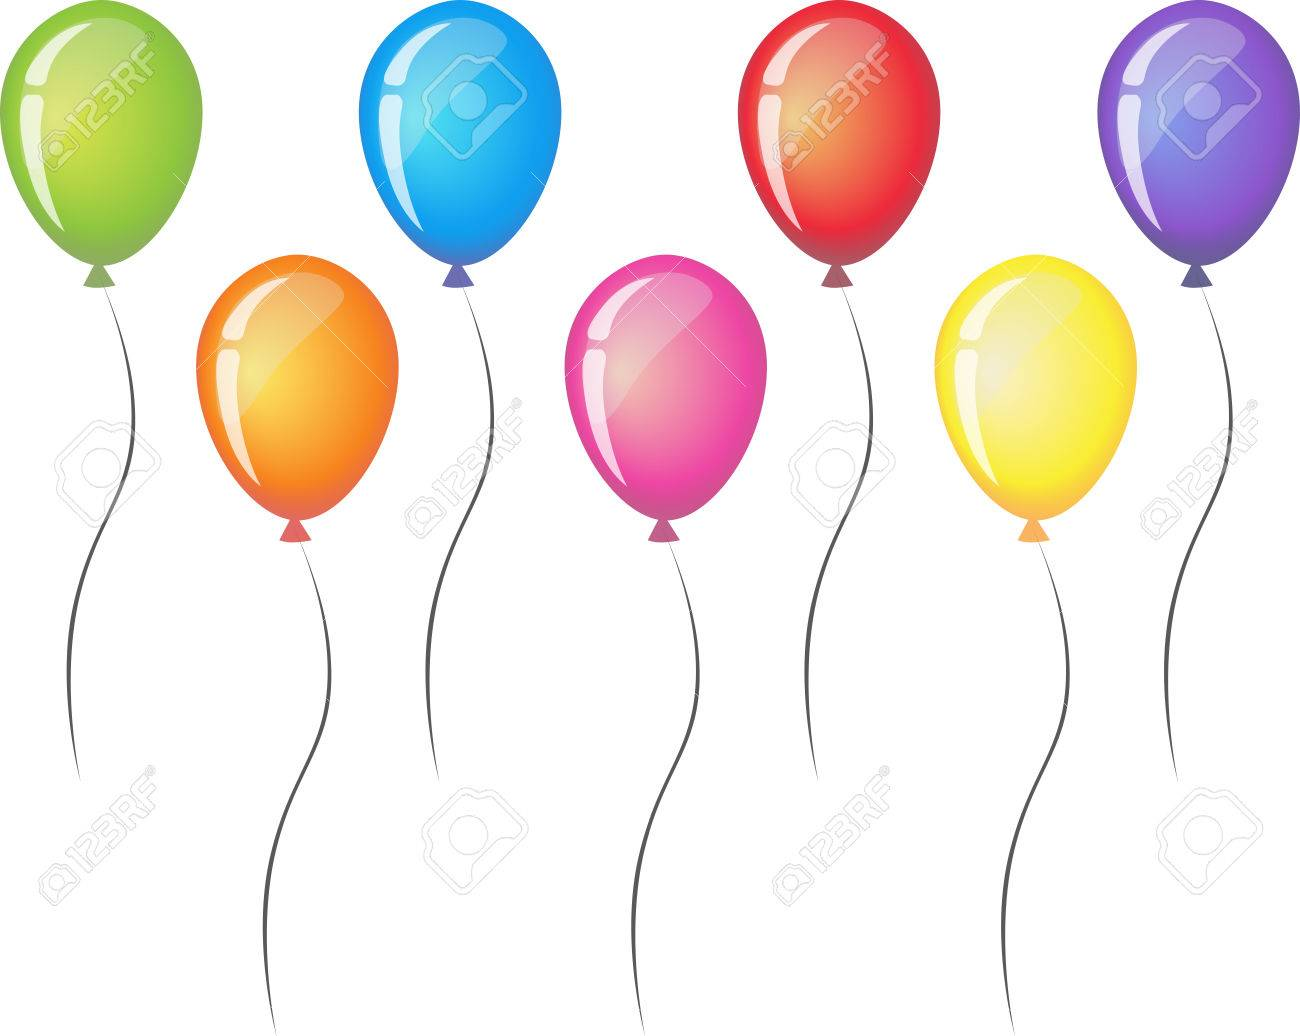 hight resolution of seven balloons with ribbon isolated on white background balloon icon red orange yellow green